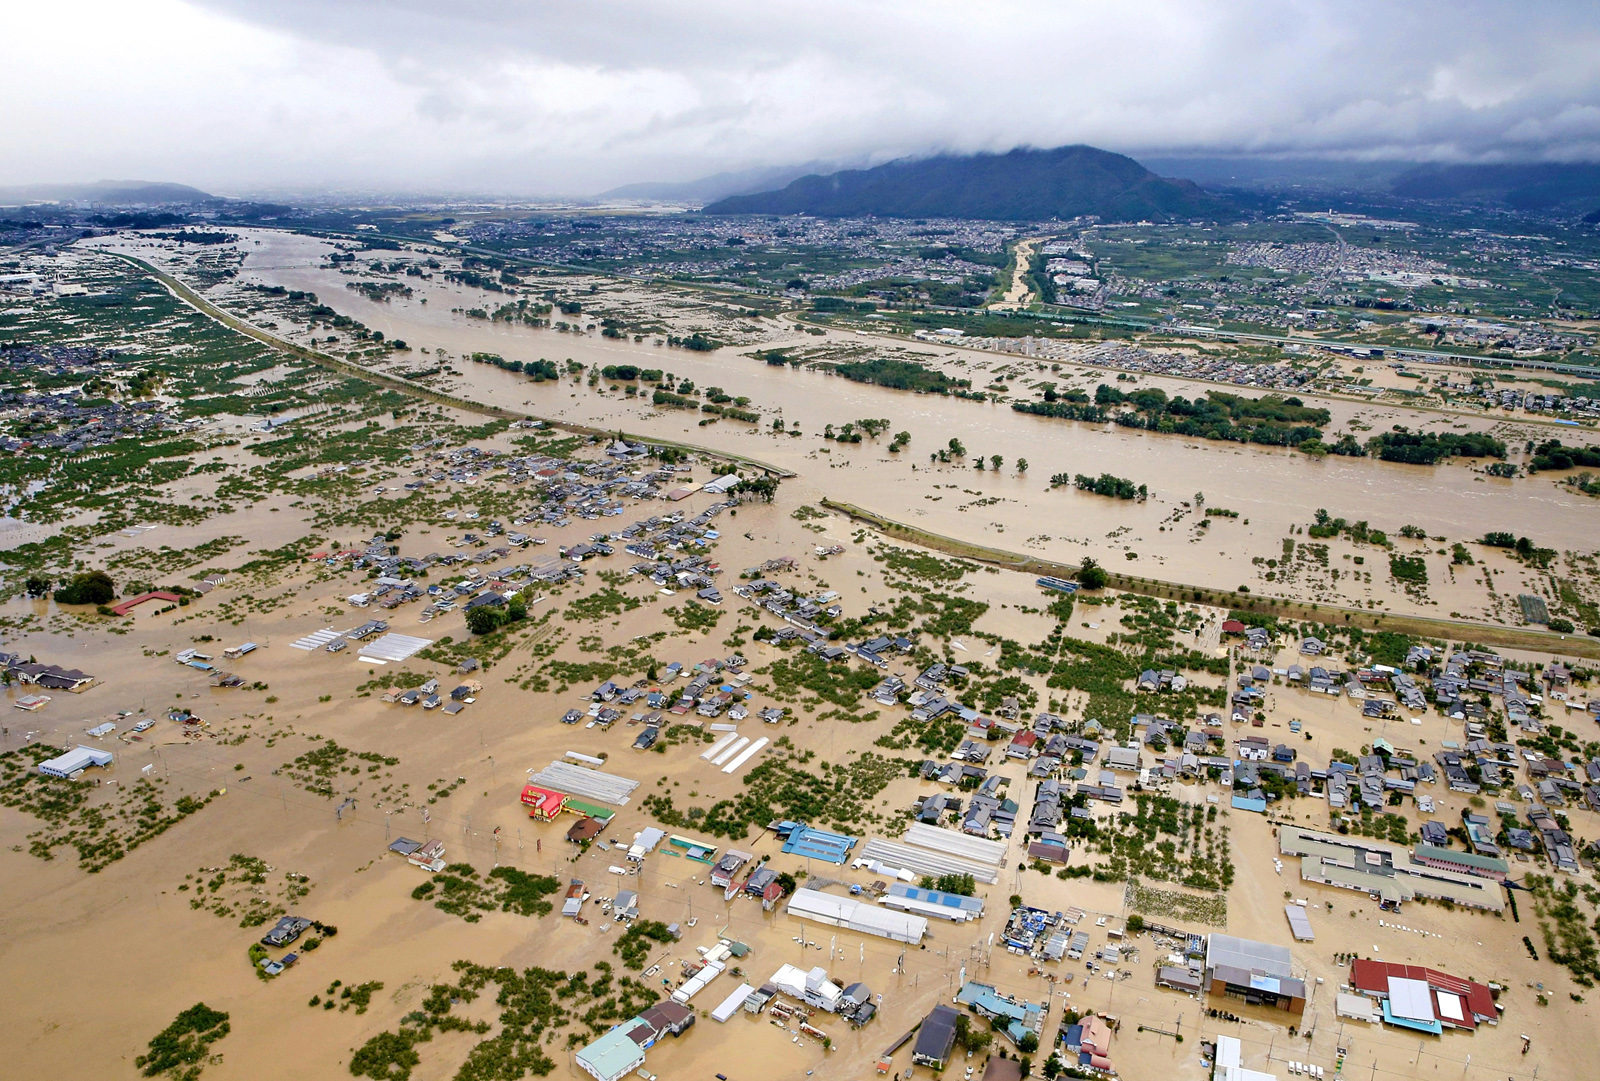 At least 35 dead or missing in Japan after Typhoon Hagibis drenches Tokyo